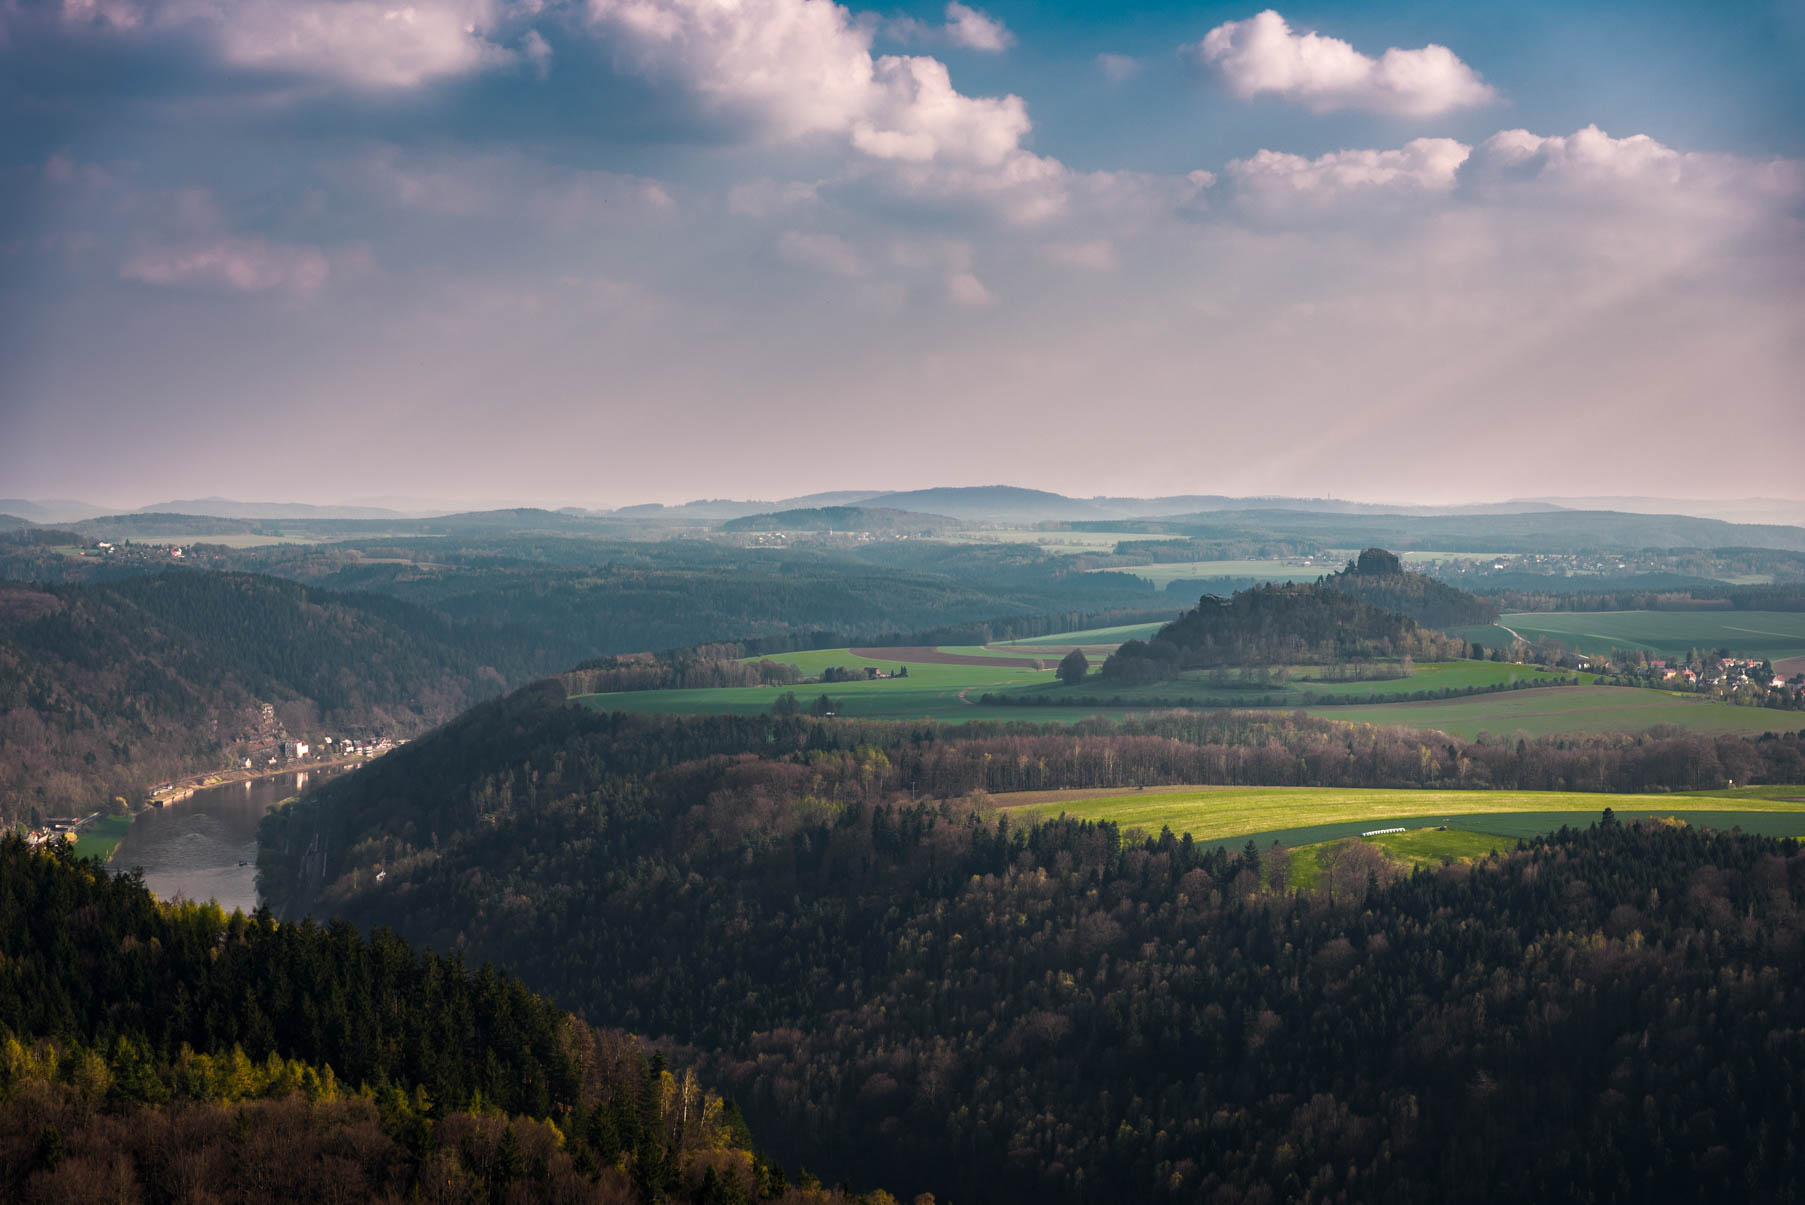 Saxon Switzerland - at 70 mm f/8, 1/160, ISO 50 RAW and final edit